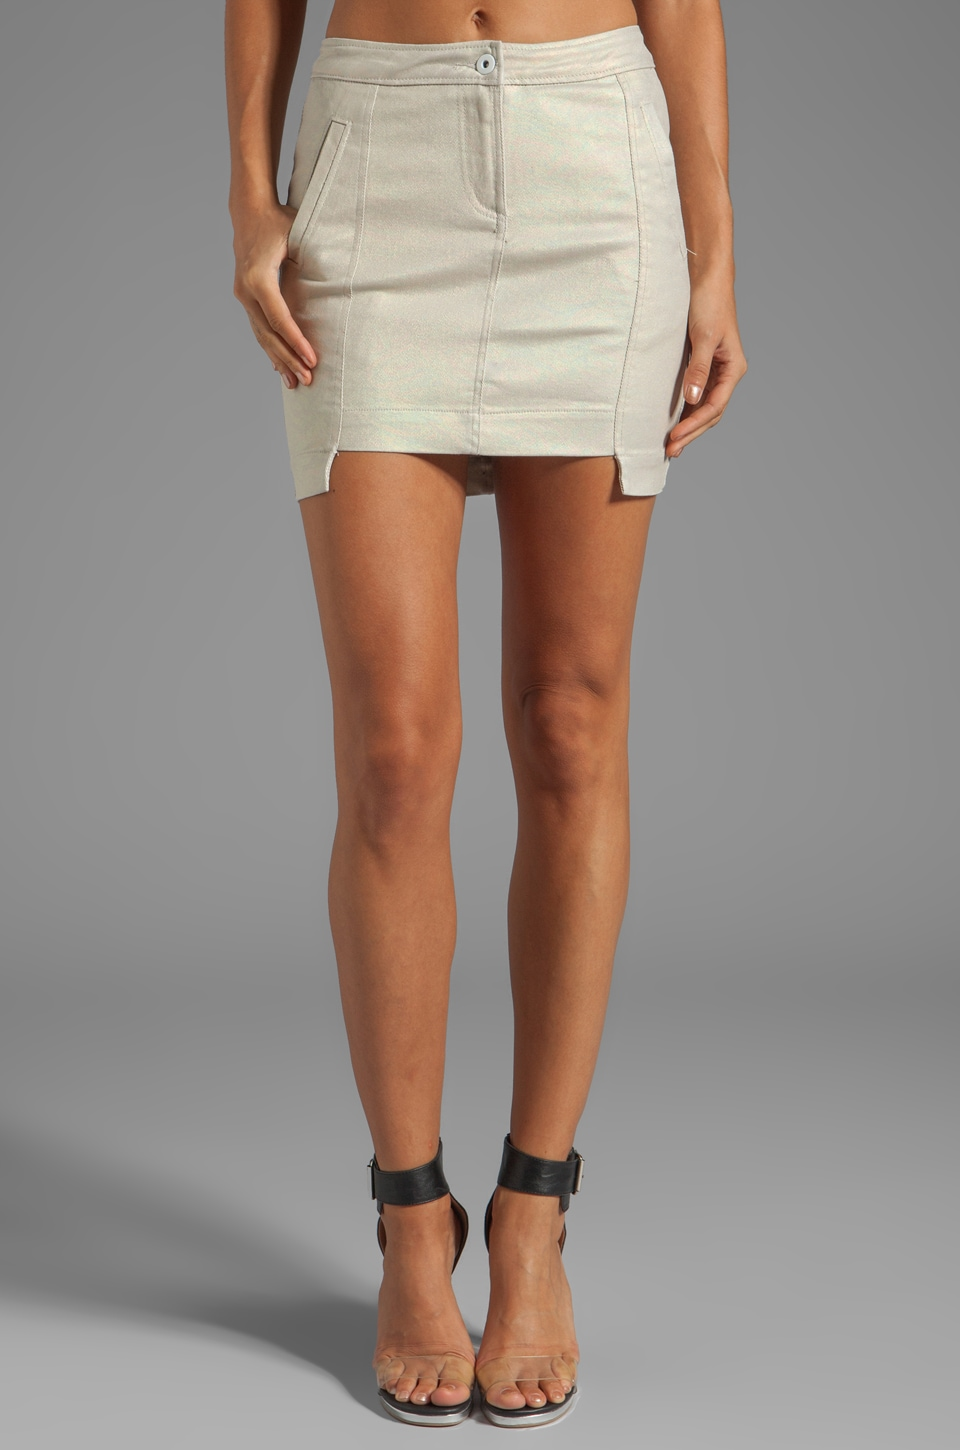 Funktional Molecular Twill Mini Skirt in Molecular